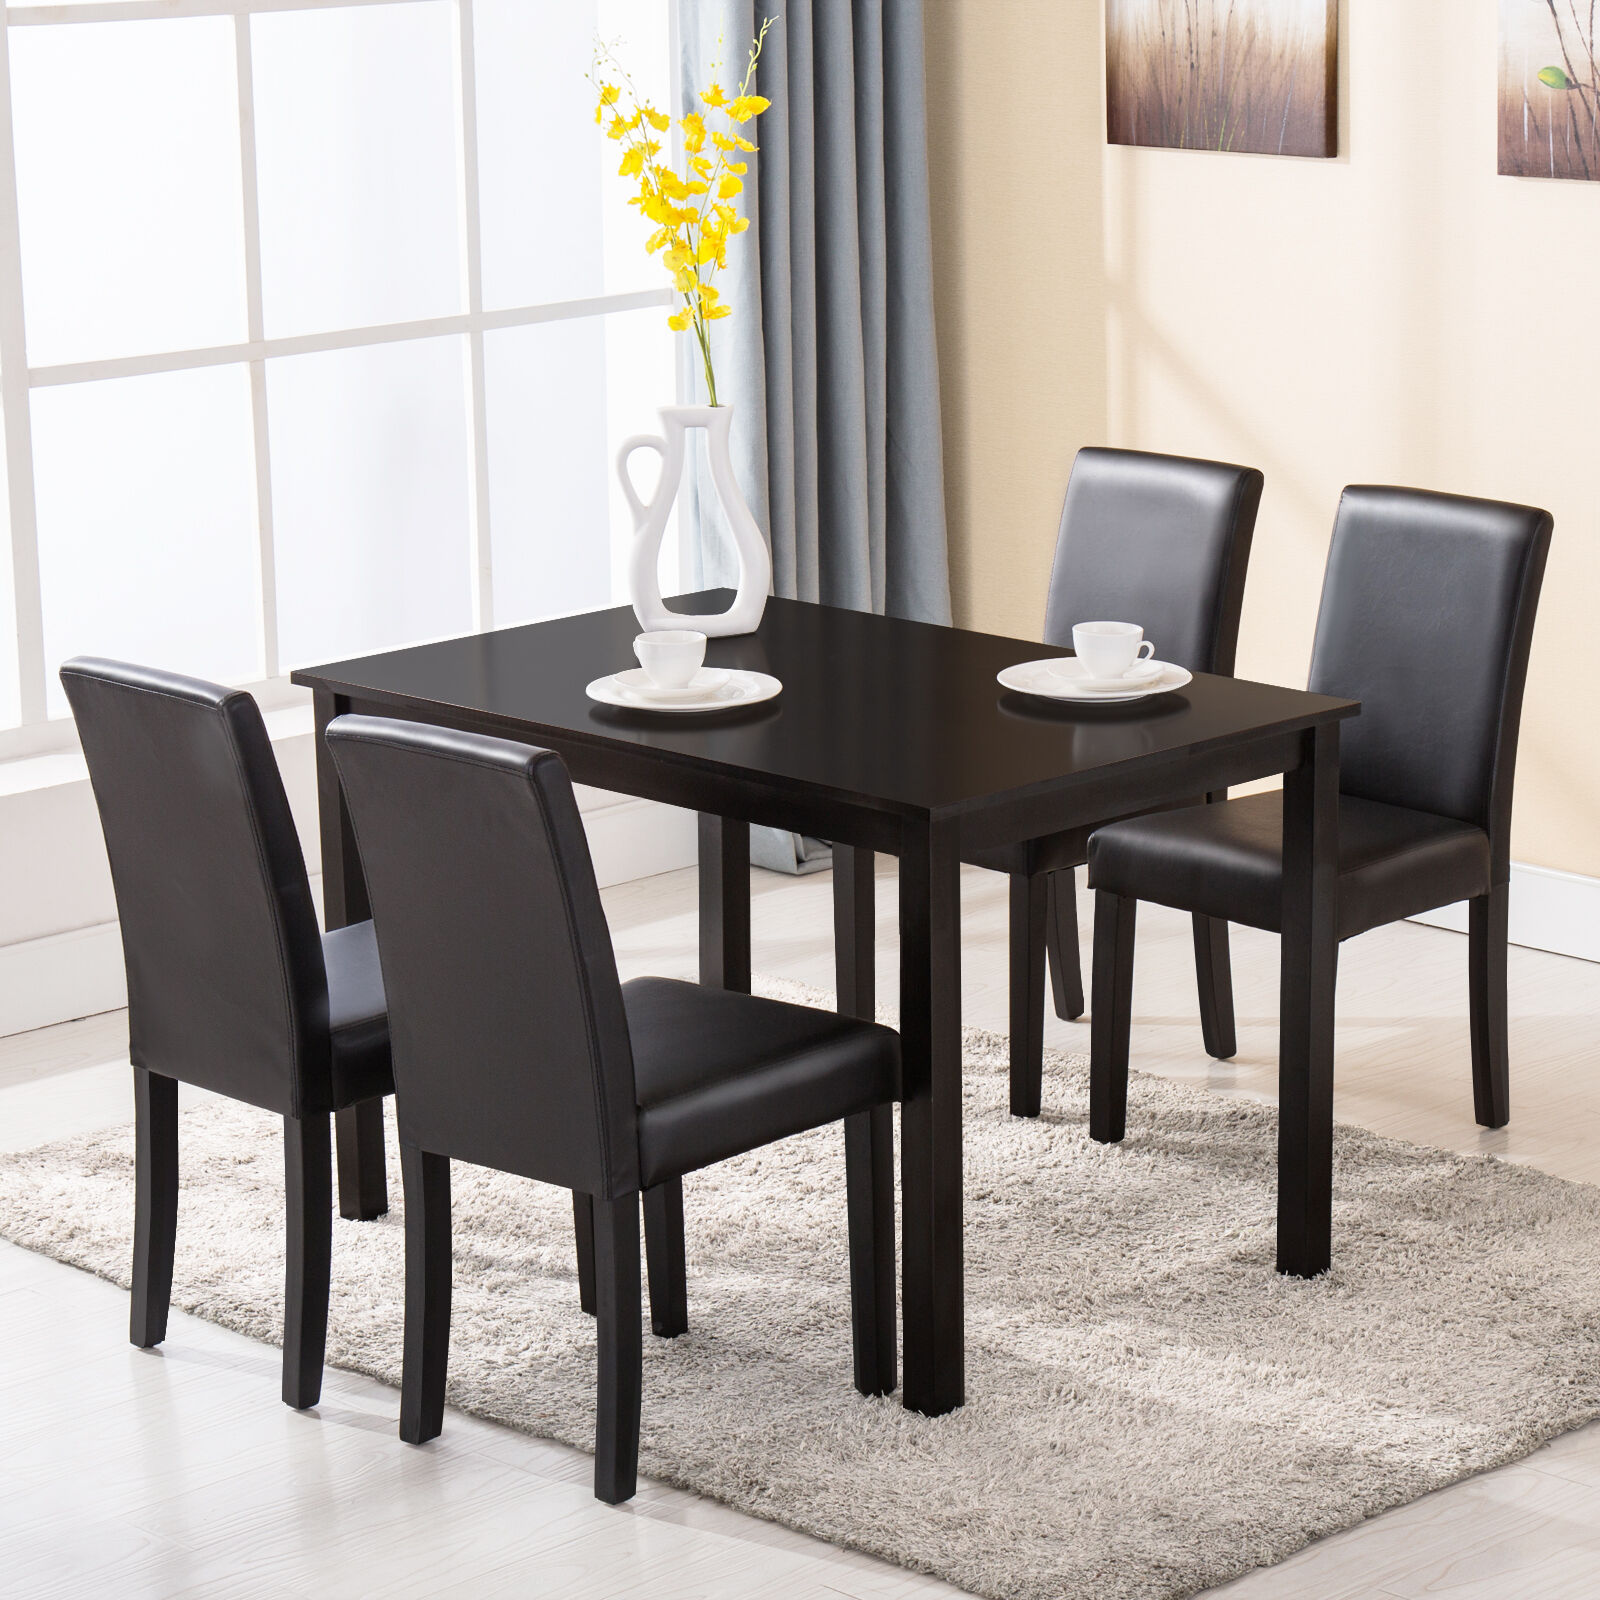 5 piece dining table set 4 chairs wood kitchen dinette for 4 chair kitchen table set